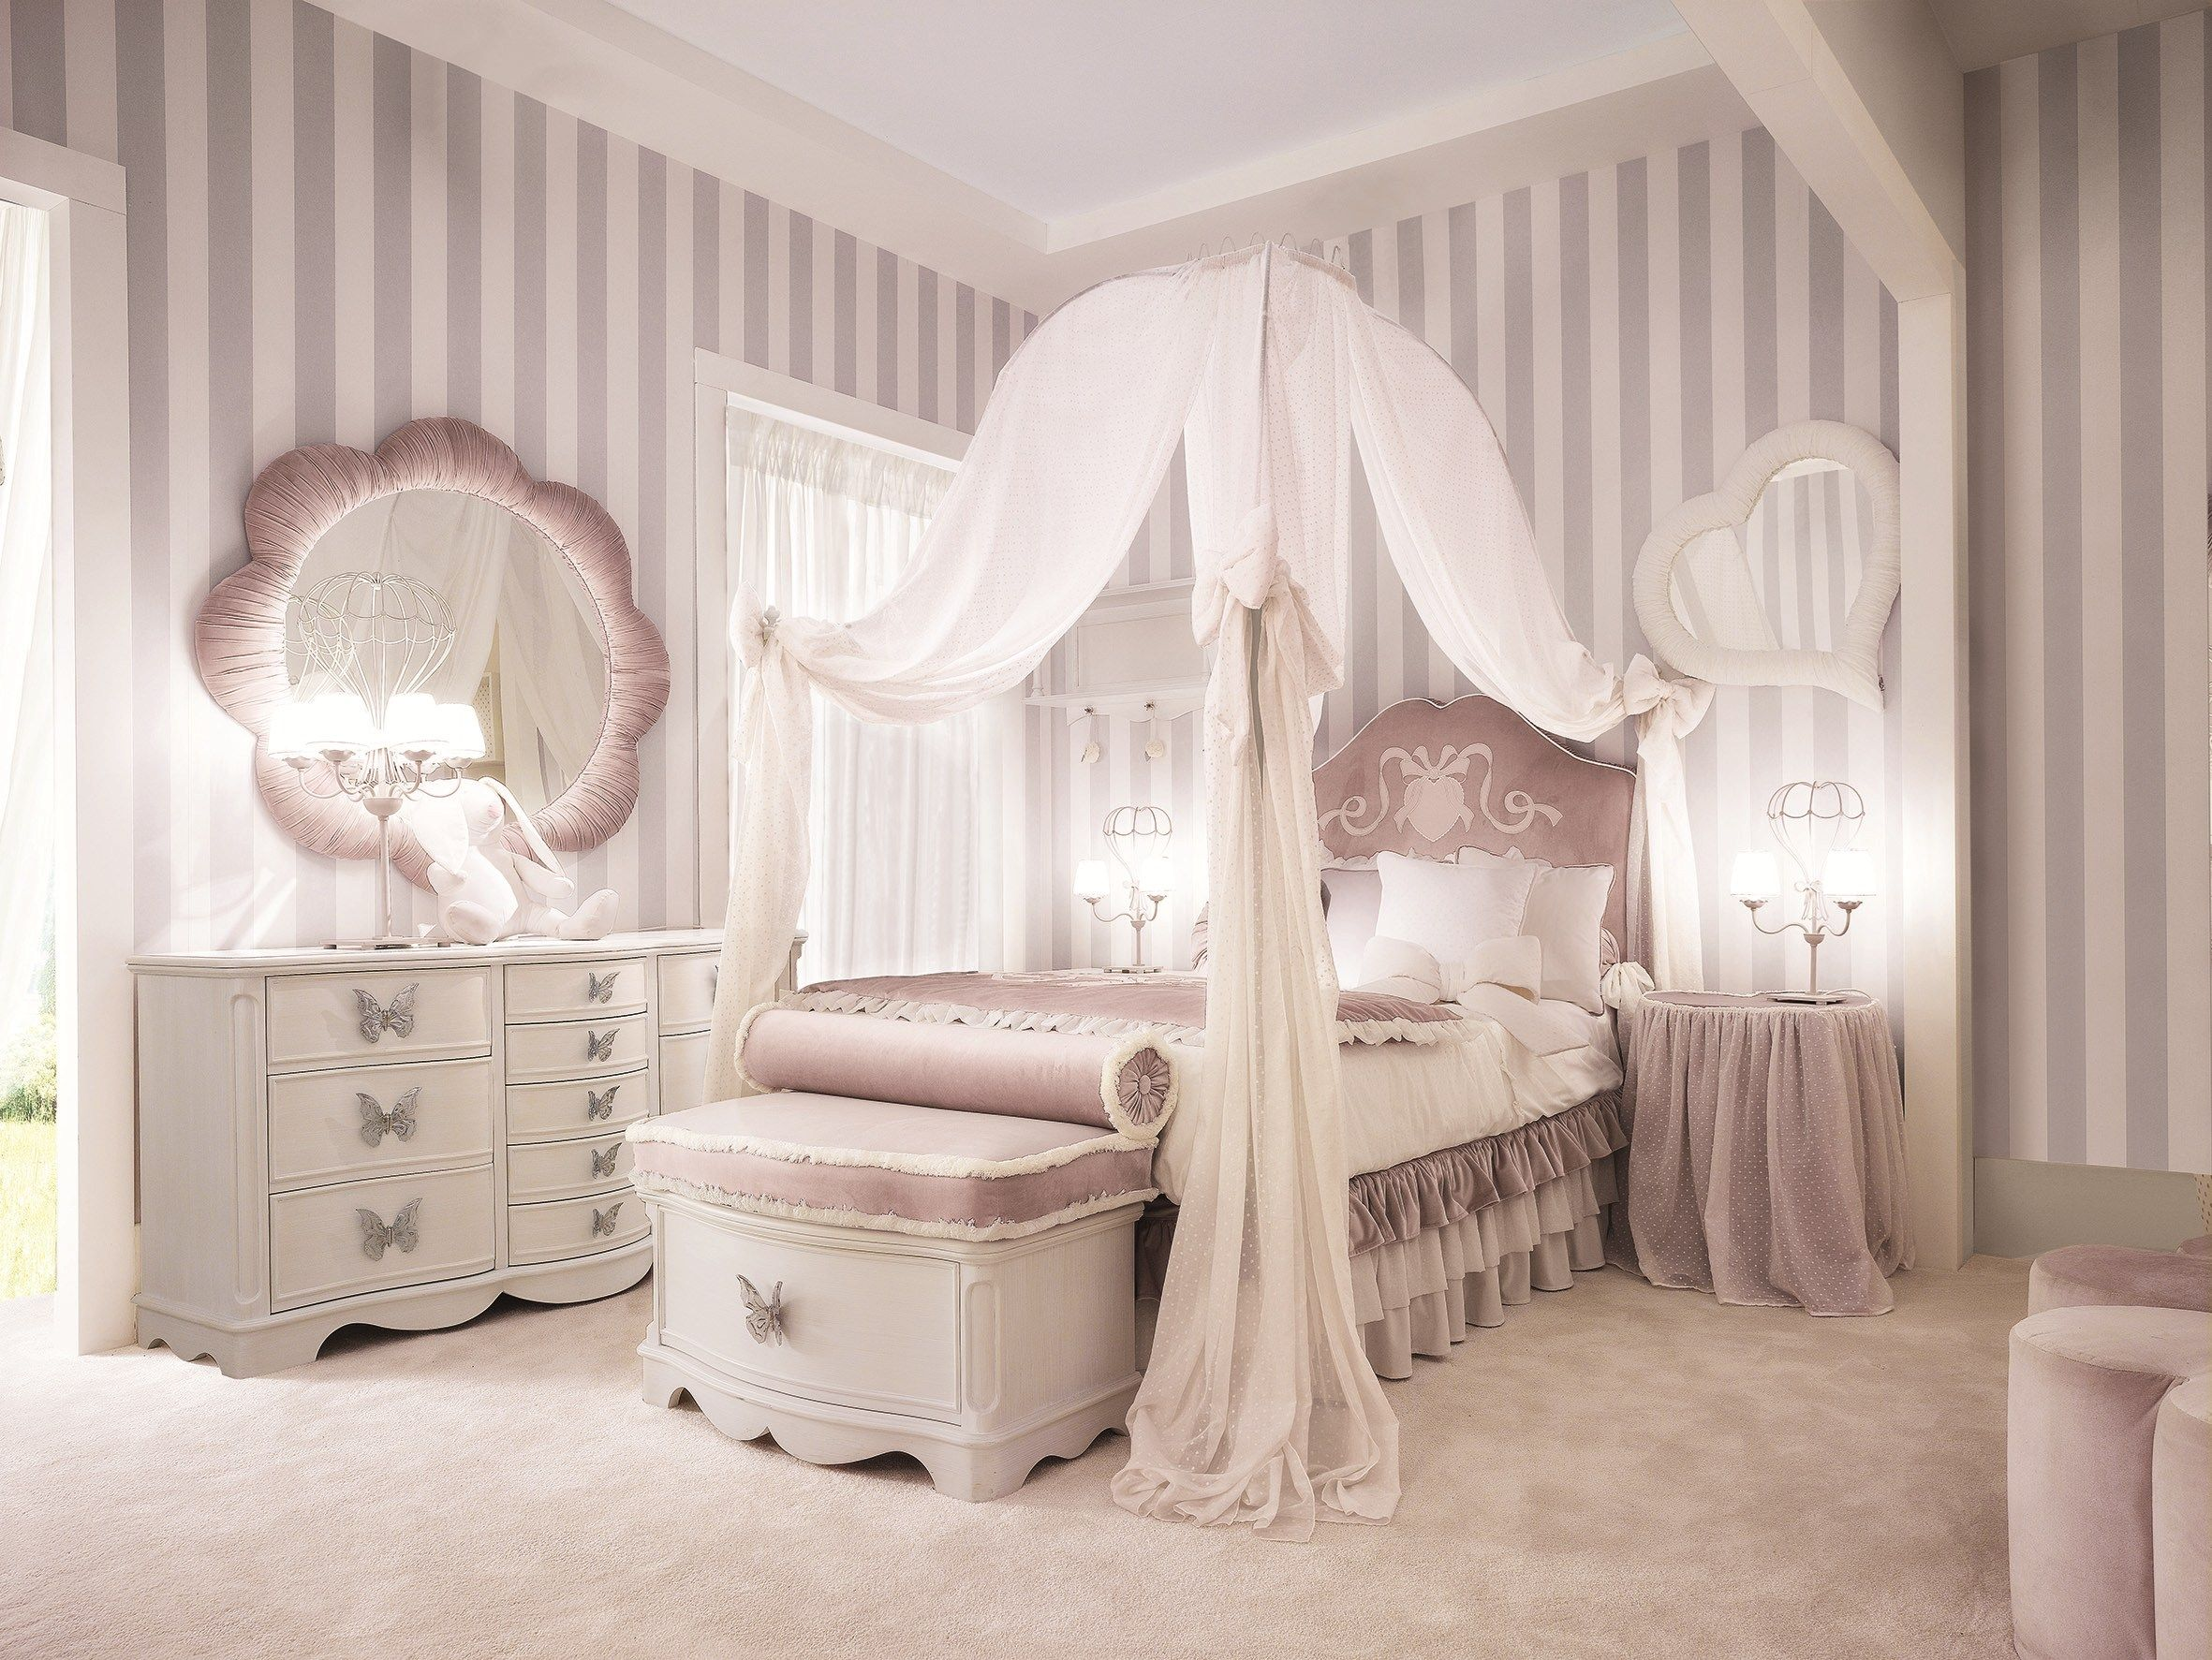 TIFFANY Bed with upholstered headboard by Dolfi